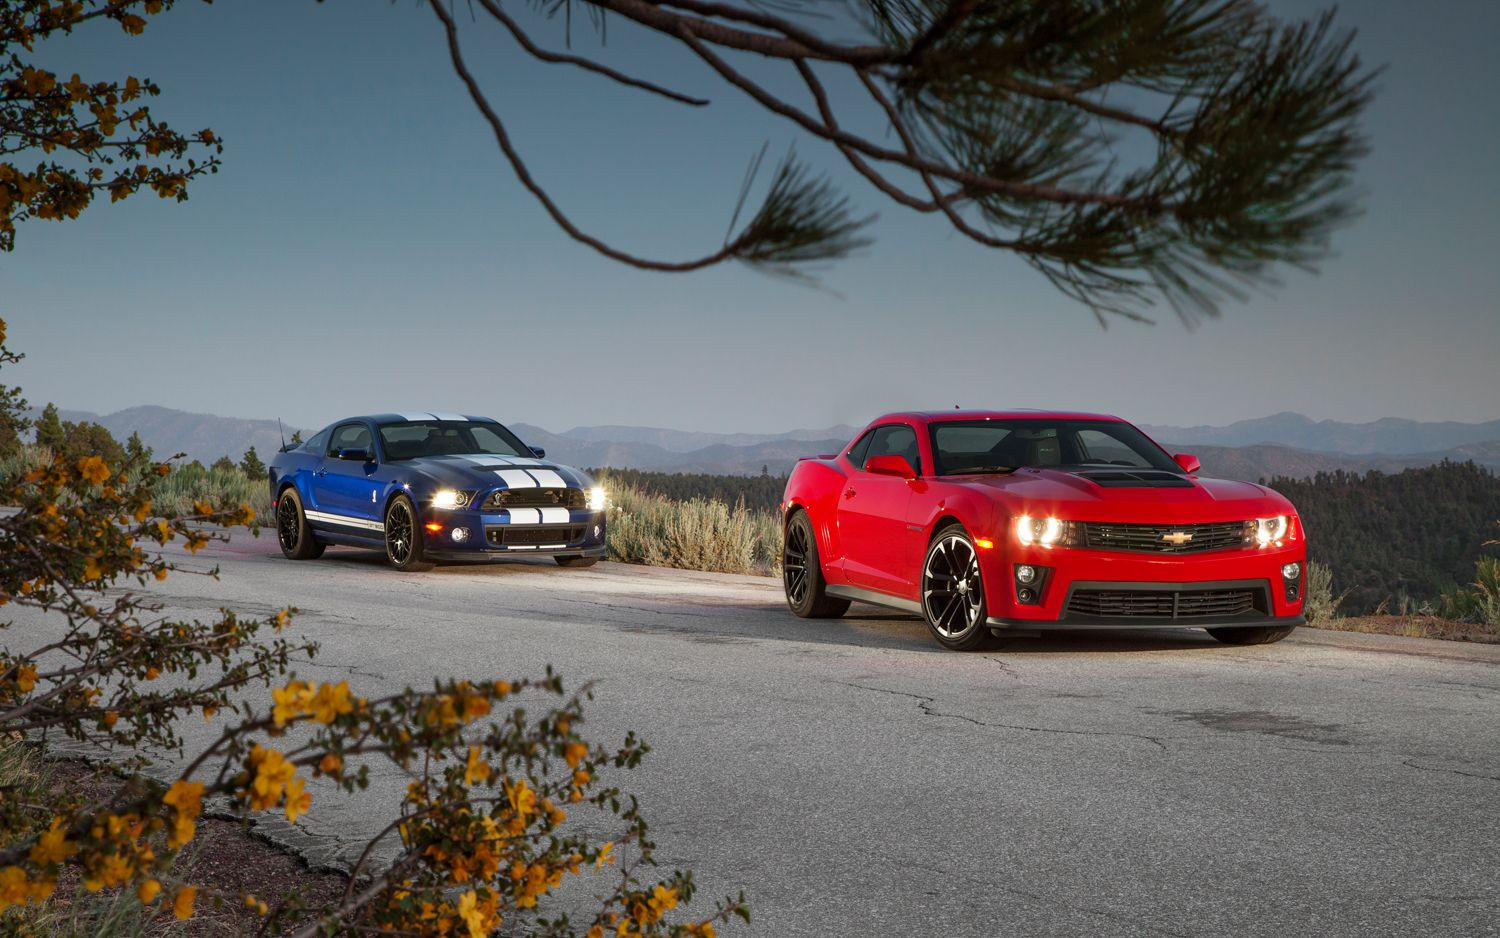 Top 13 American Muscle Cars For Independence Day Motortrend